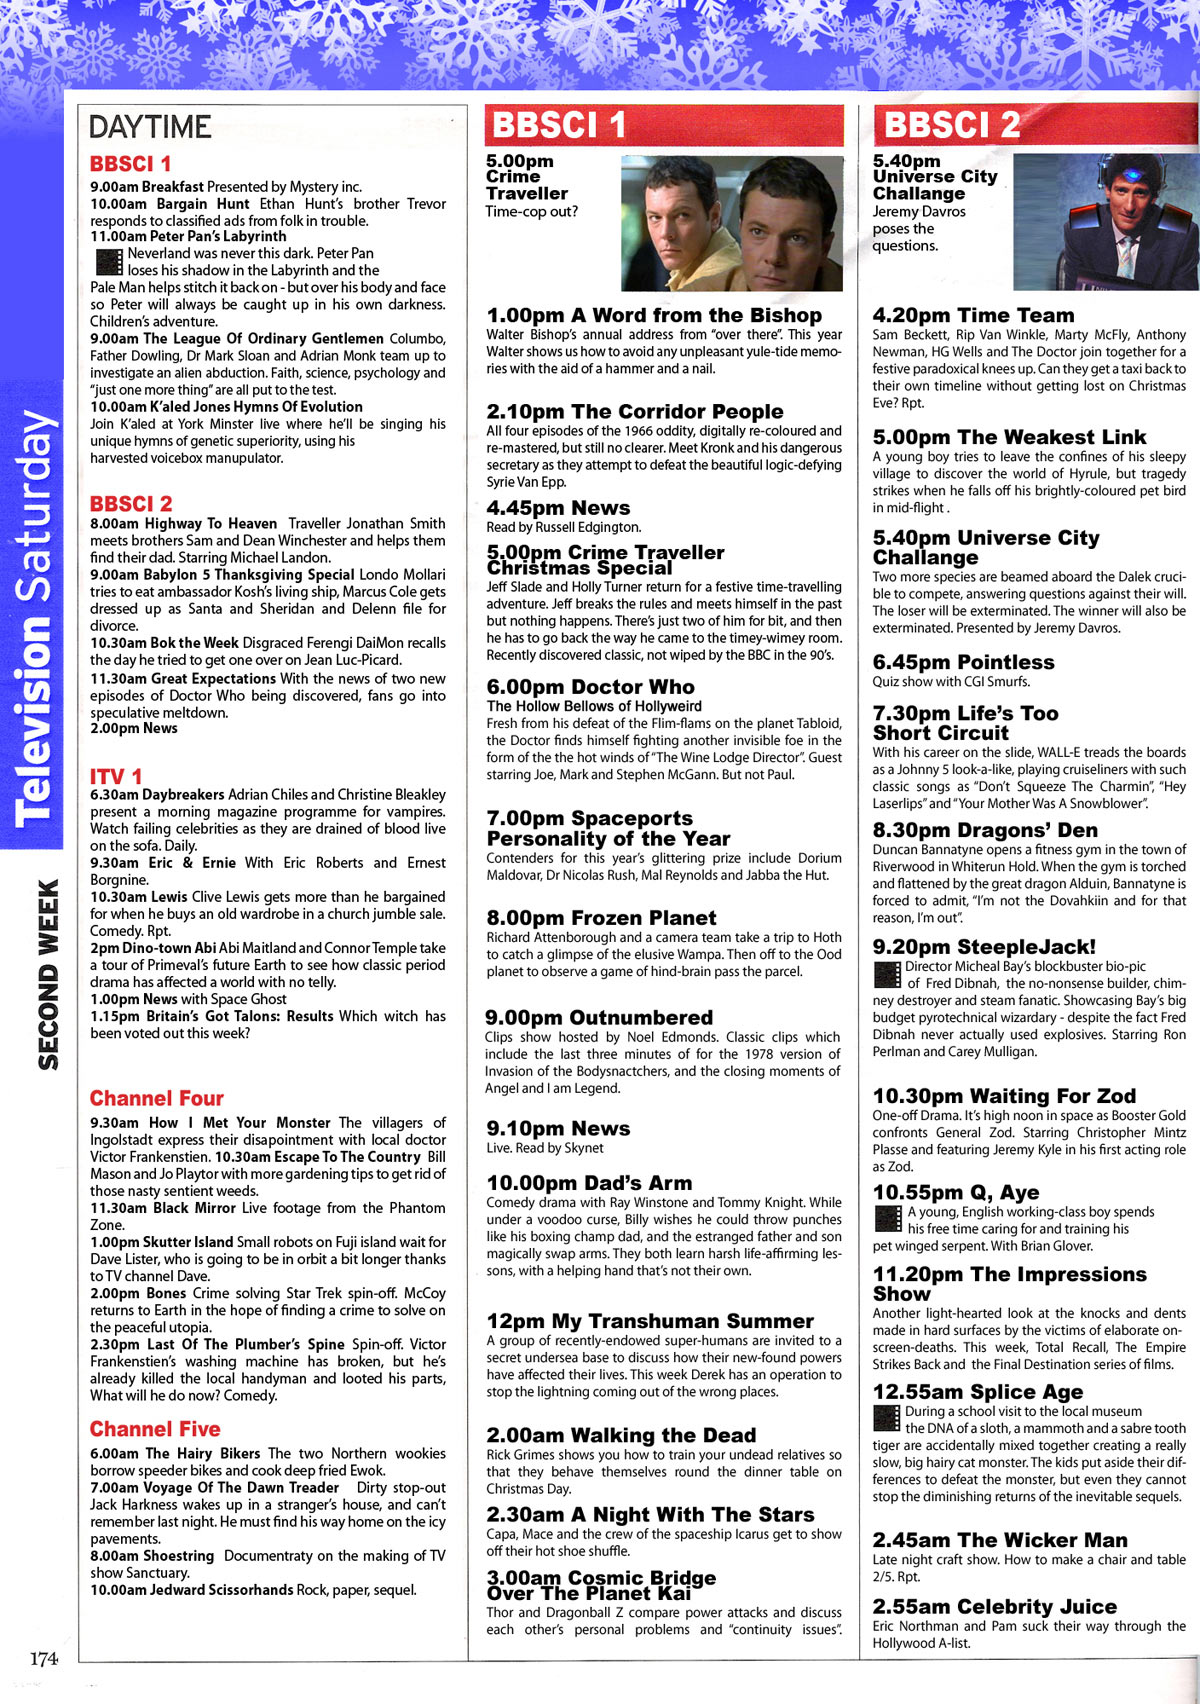 Celebrity juice archives tvguide. Co. Uk news.